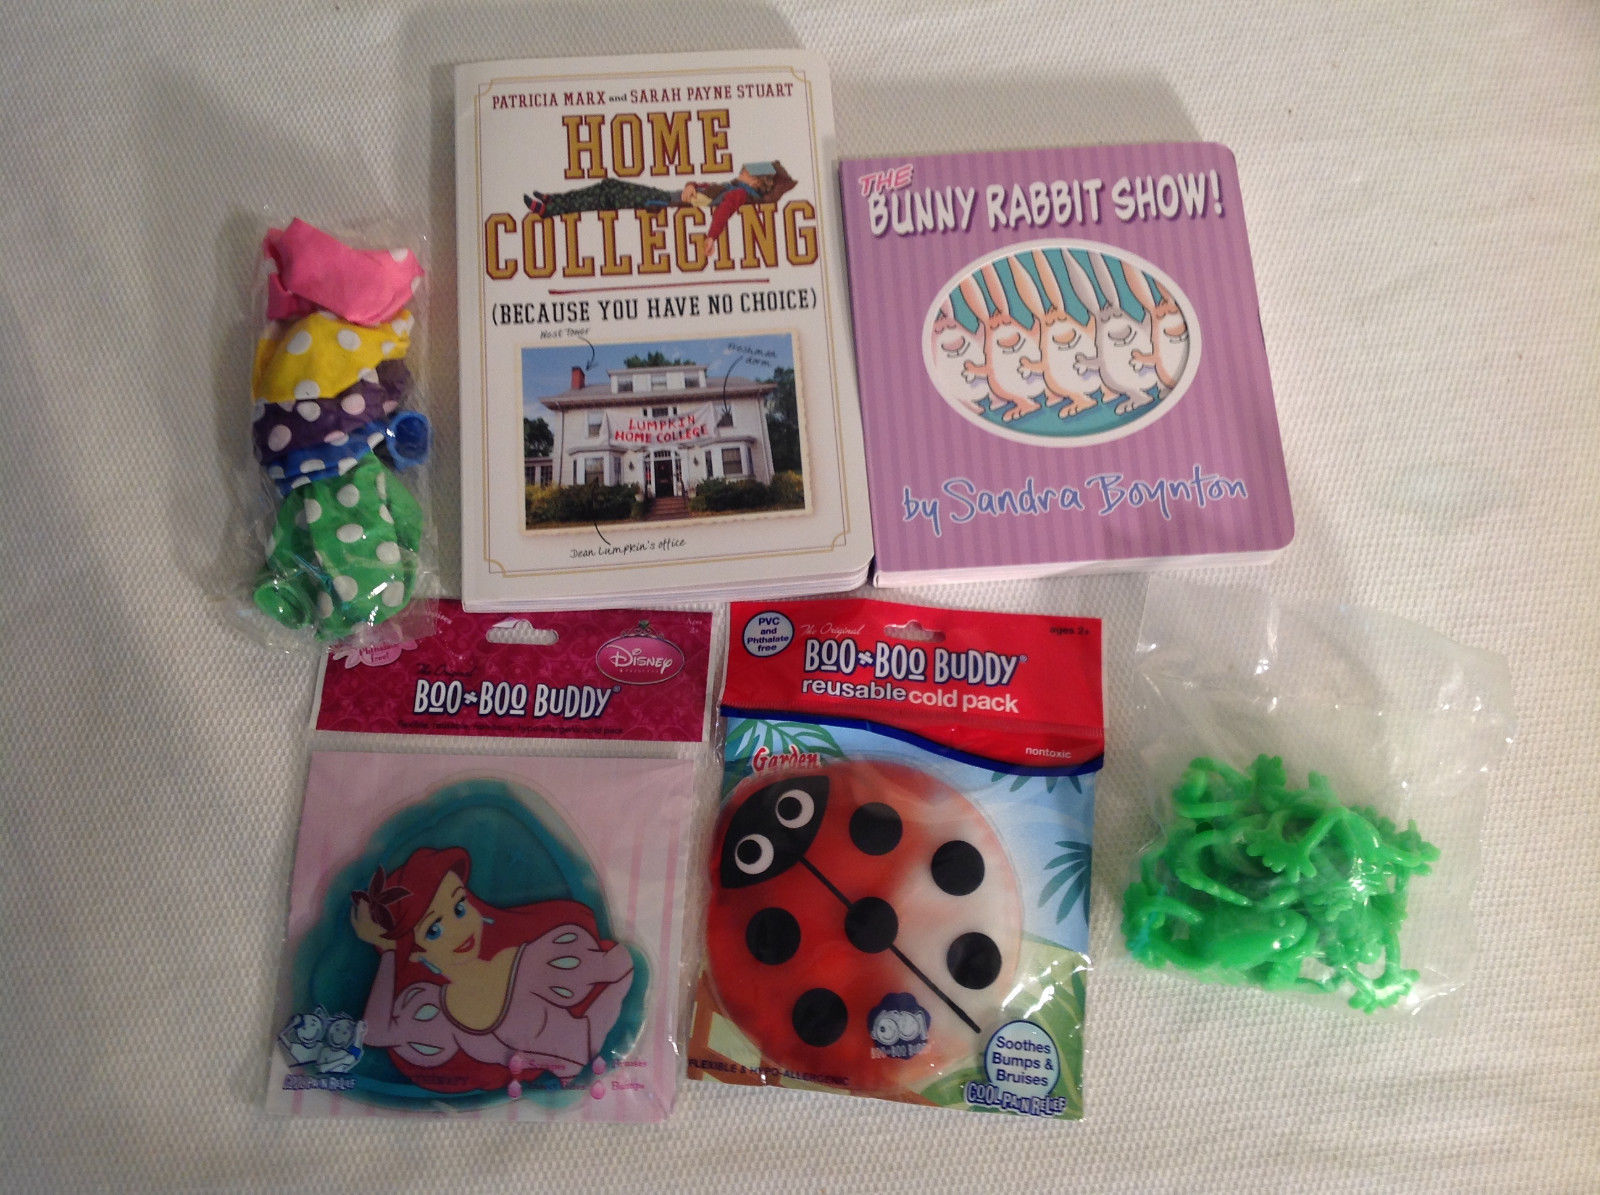 Mommy's Gift Lot - Home Colleging, Bunny Rabit Show, 2 Cold packs balloons slink